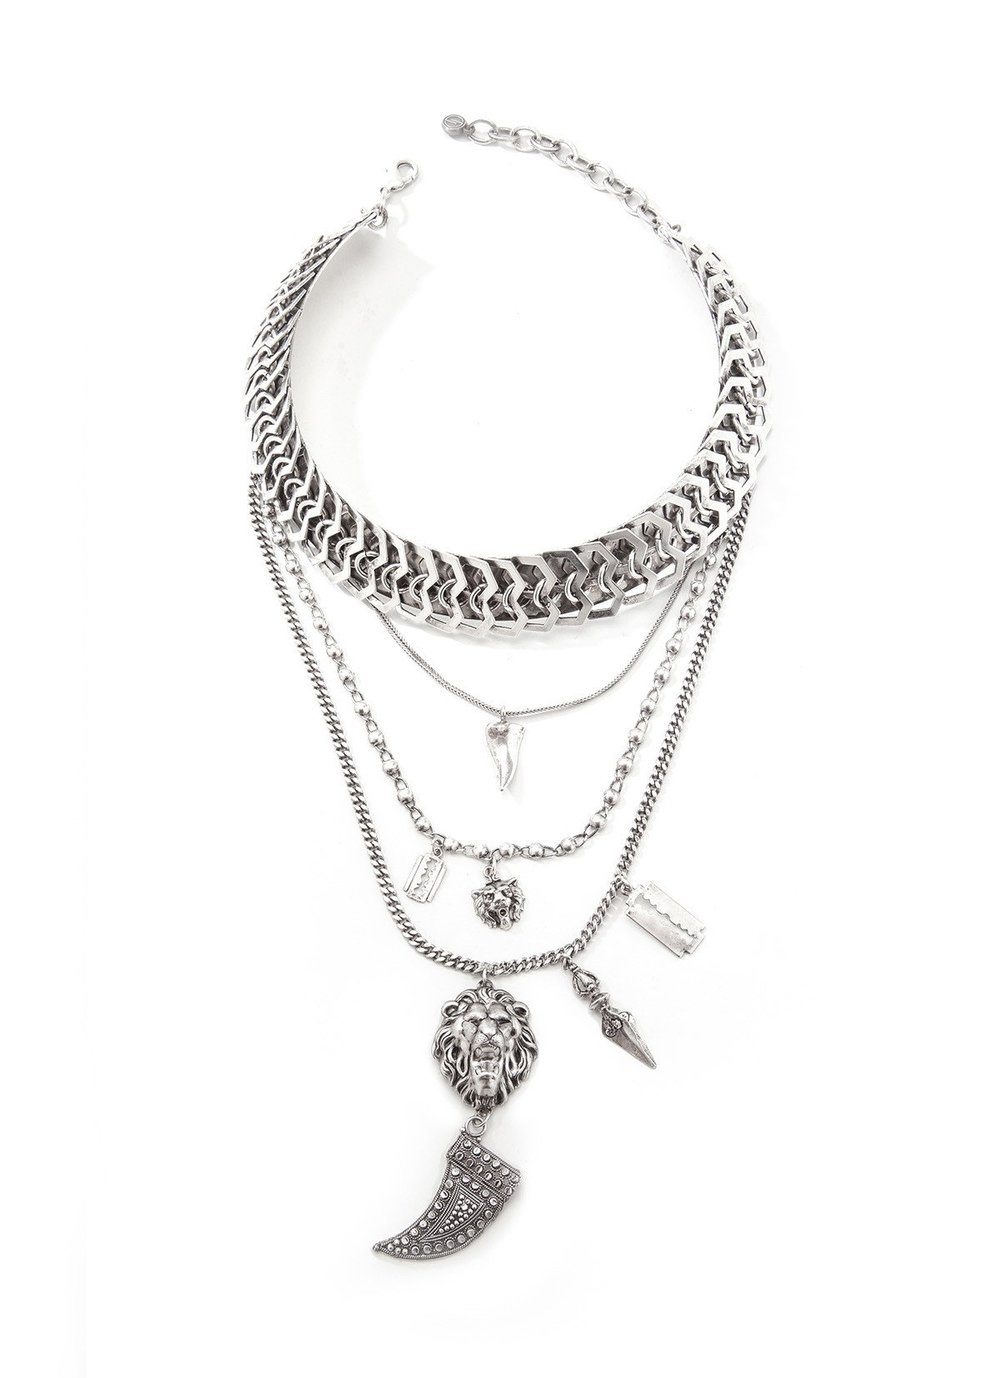 Main_0015_necklace_1.jpg